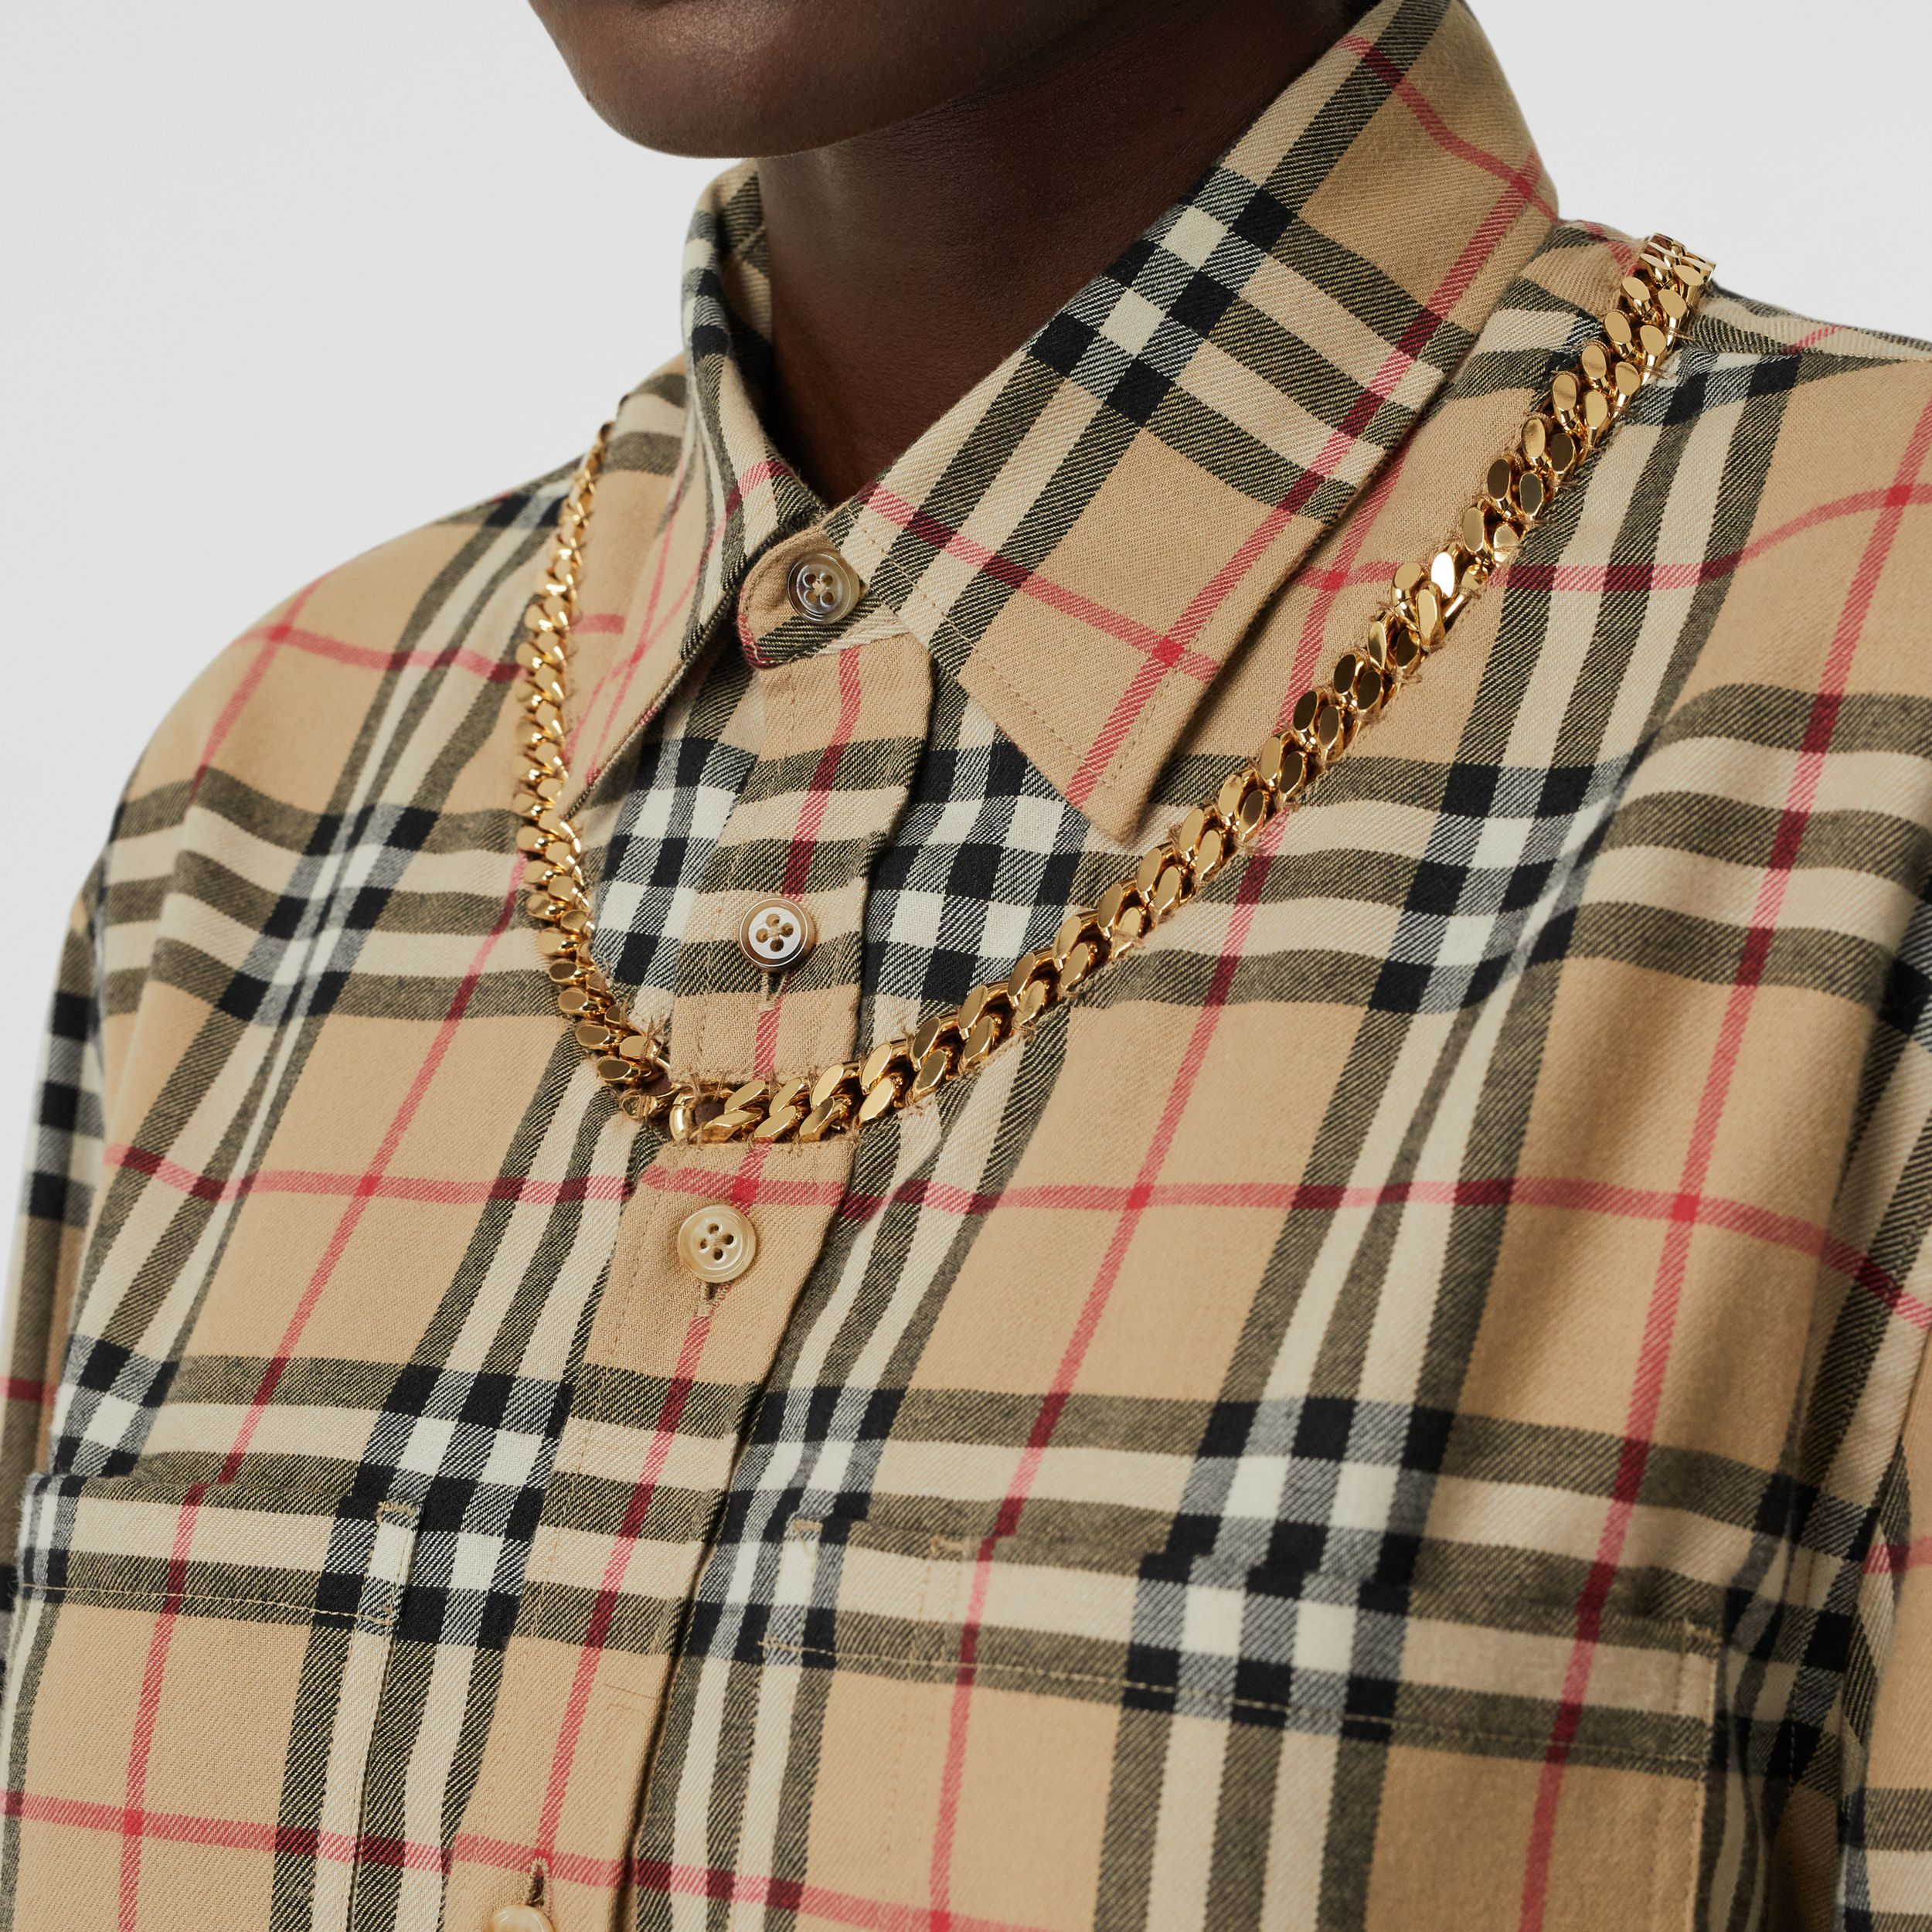 Chain Detail Vintage Check Cotton Flannel Shirt in Archive Beige - Women | Burberry - 2